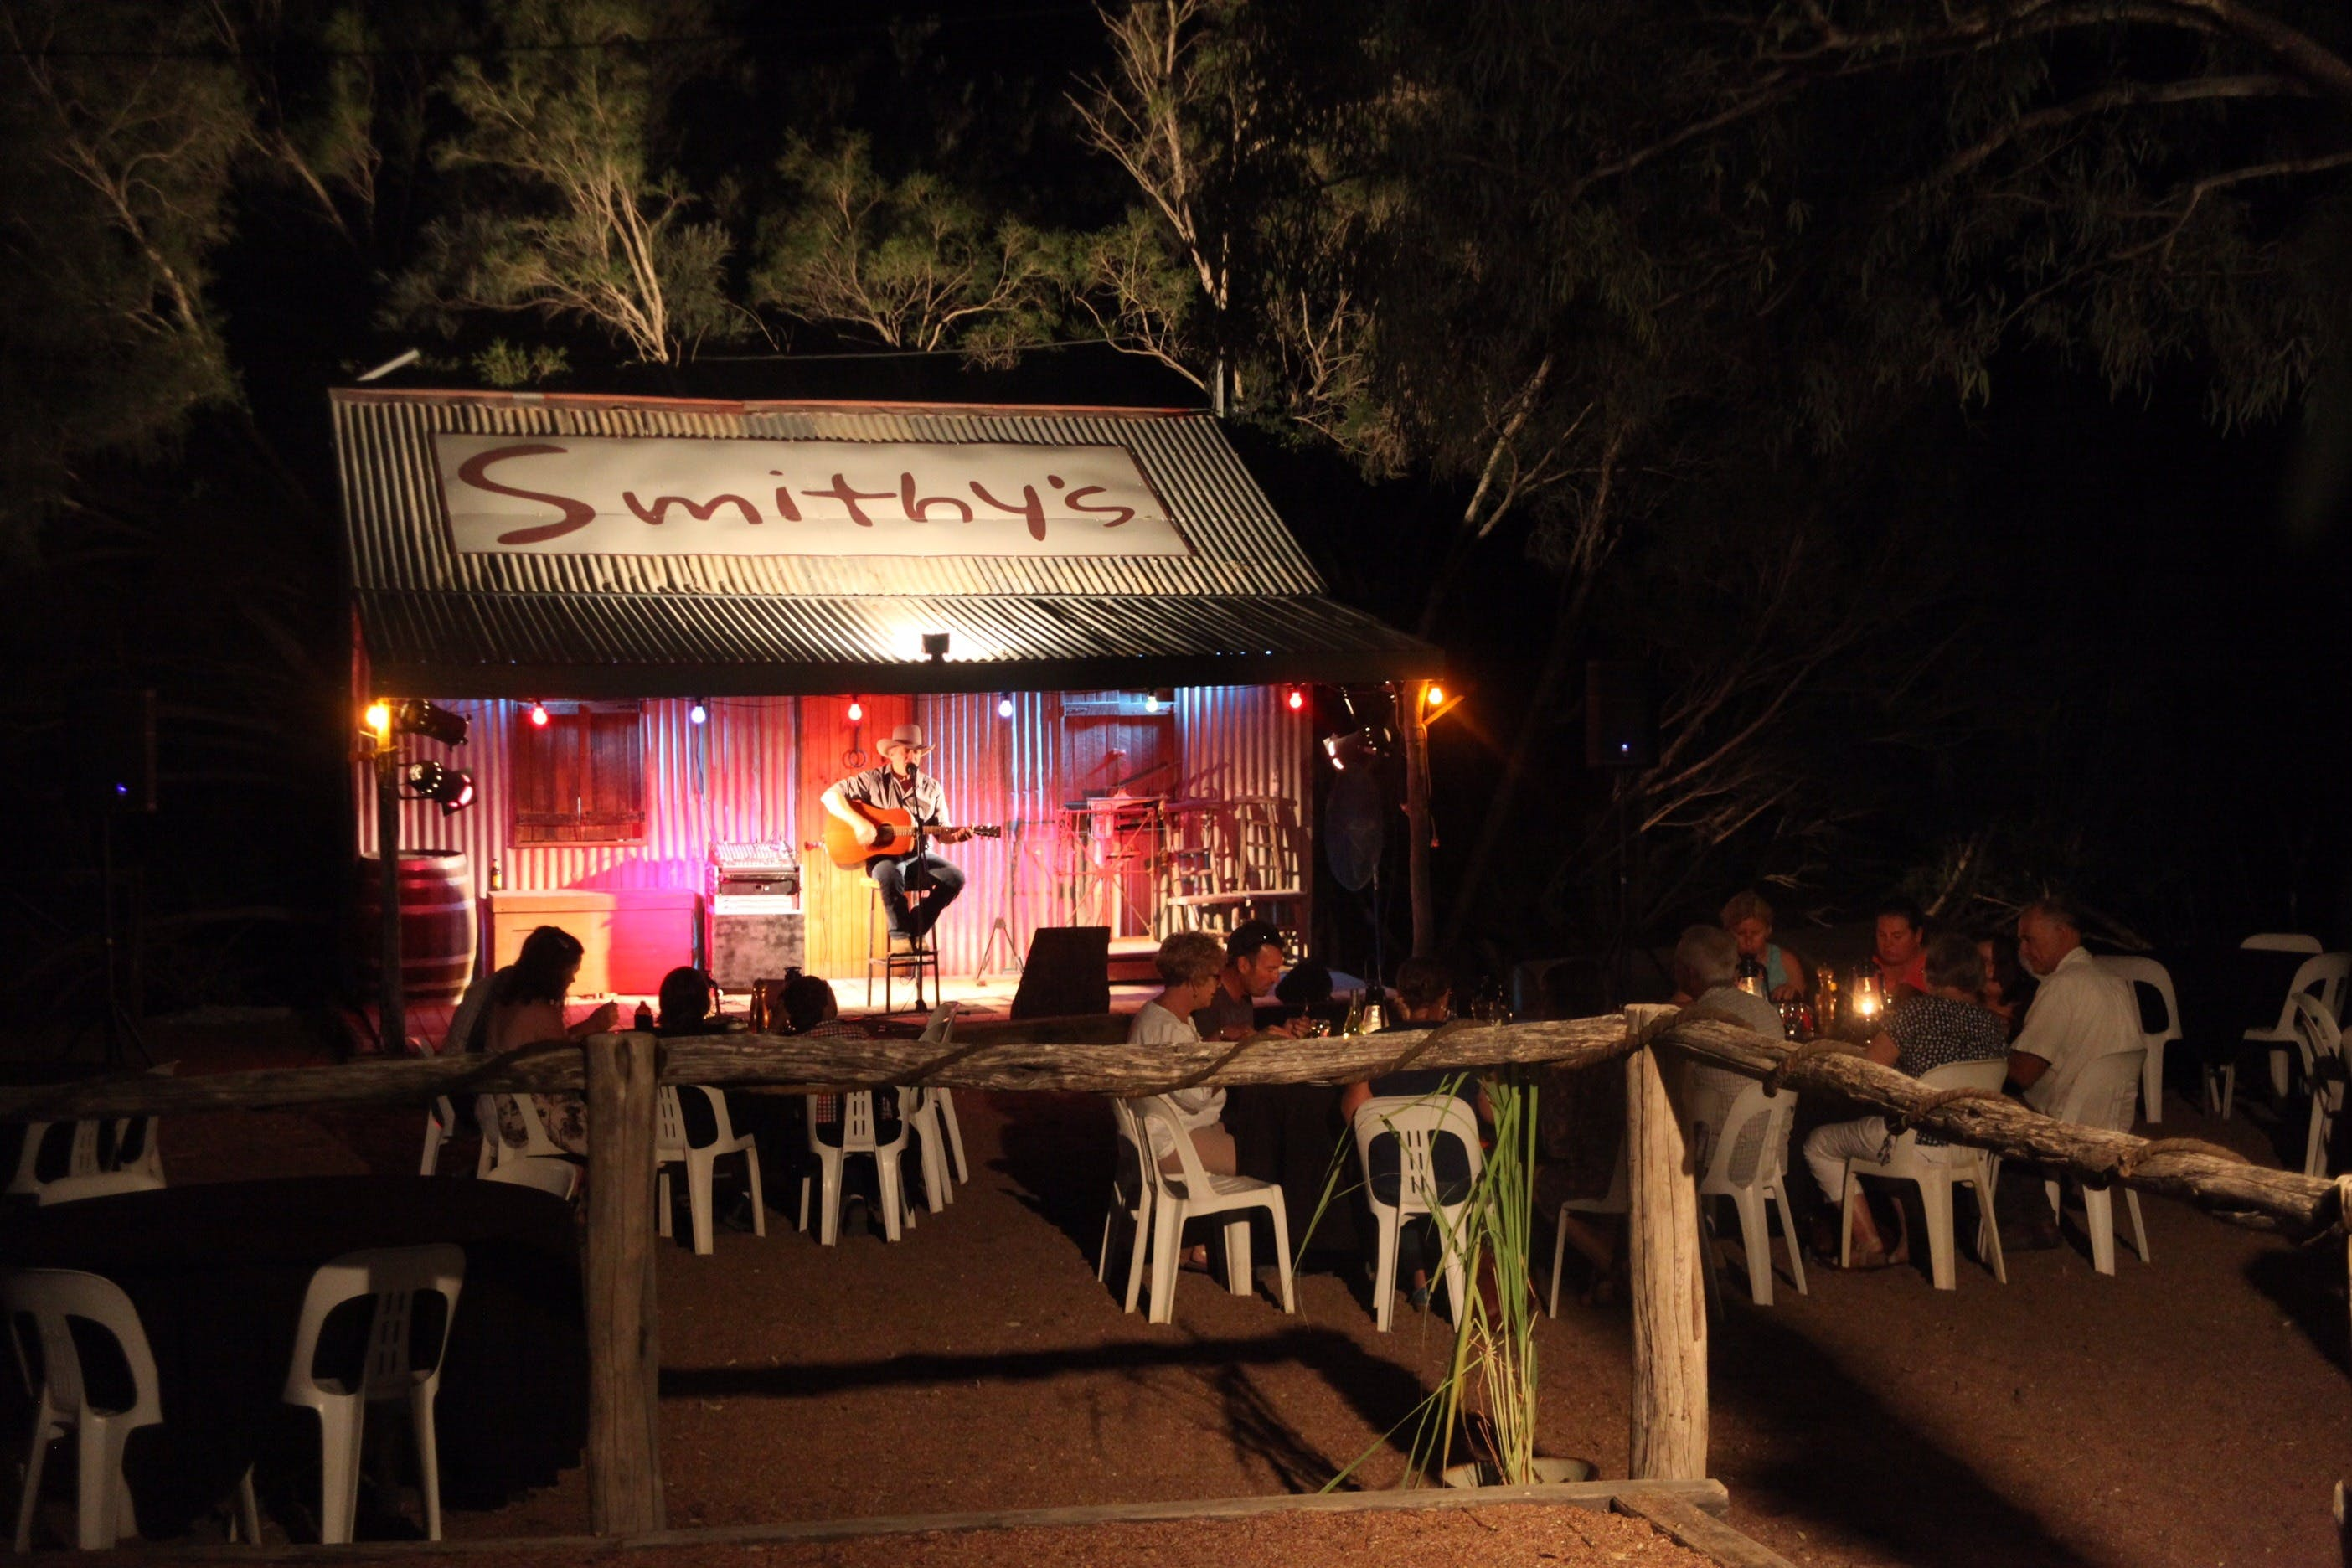 Smithy's Outback Dinner and Show - New South Wales Tourism